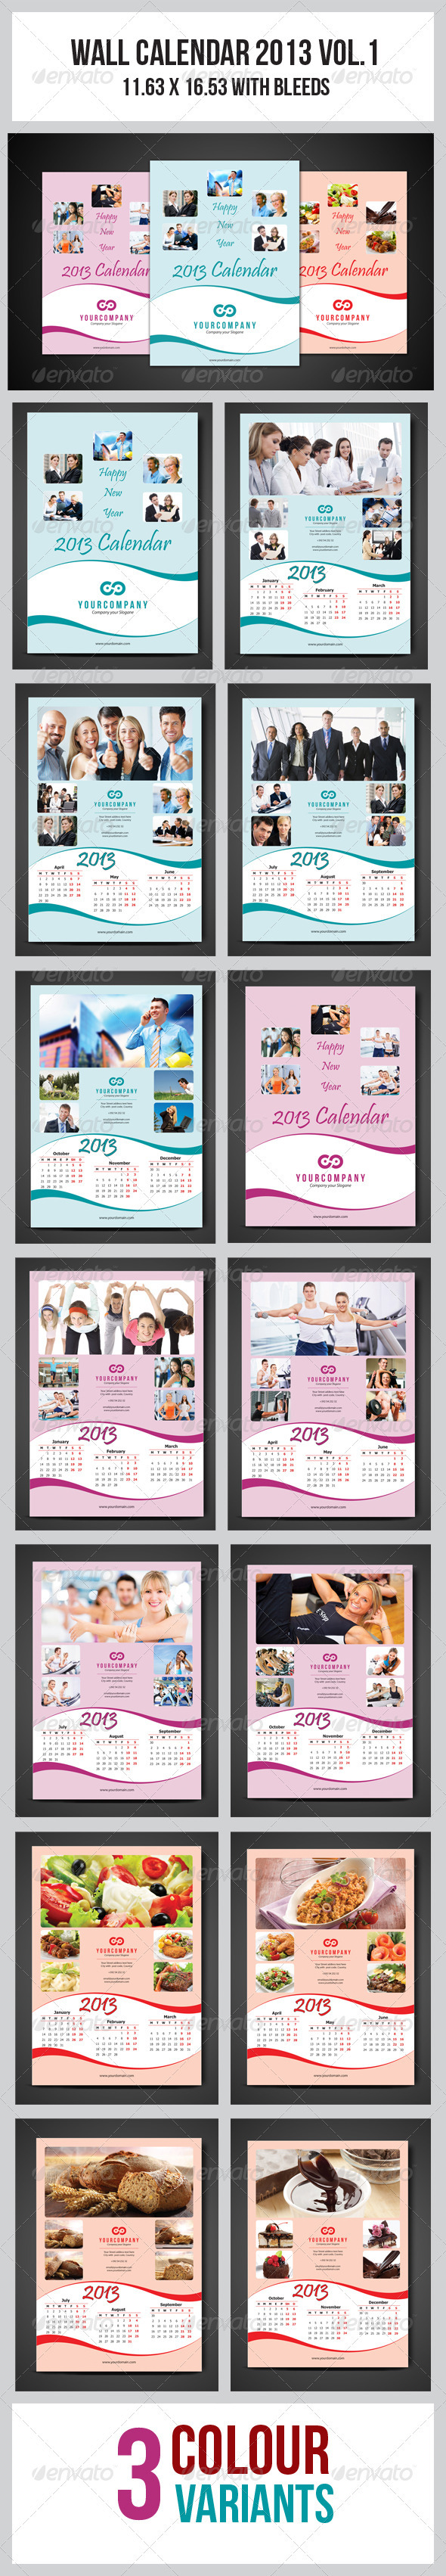 Wall Calendar 2013 Vol.1 - Calendars Stationery